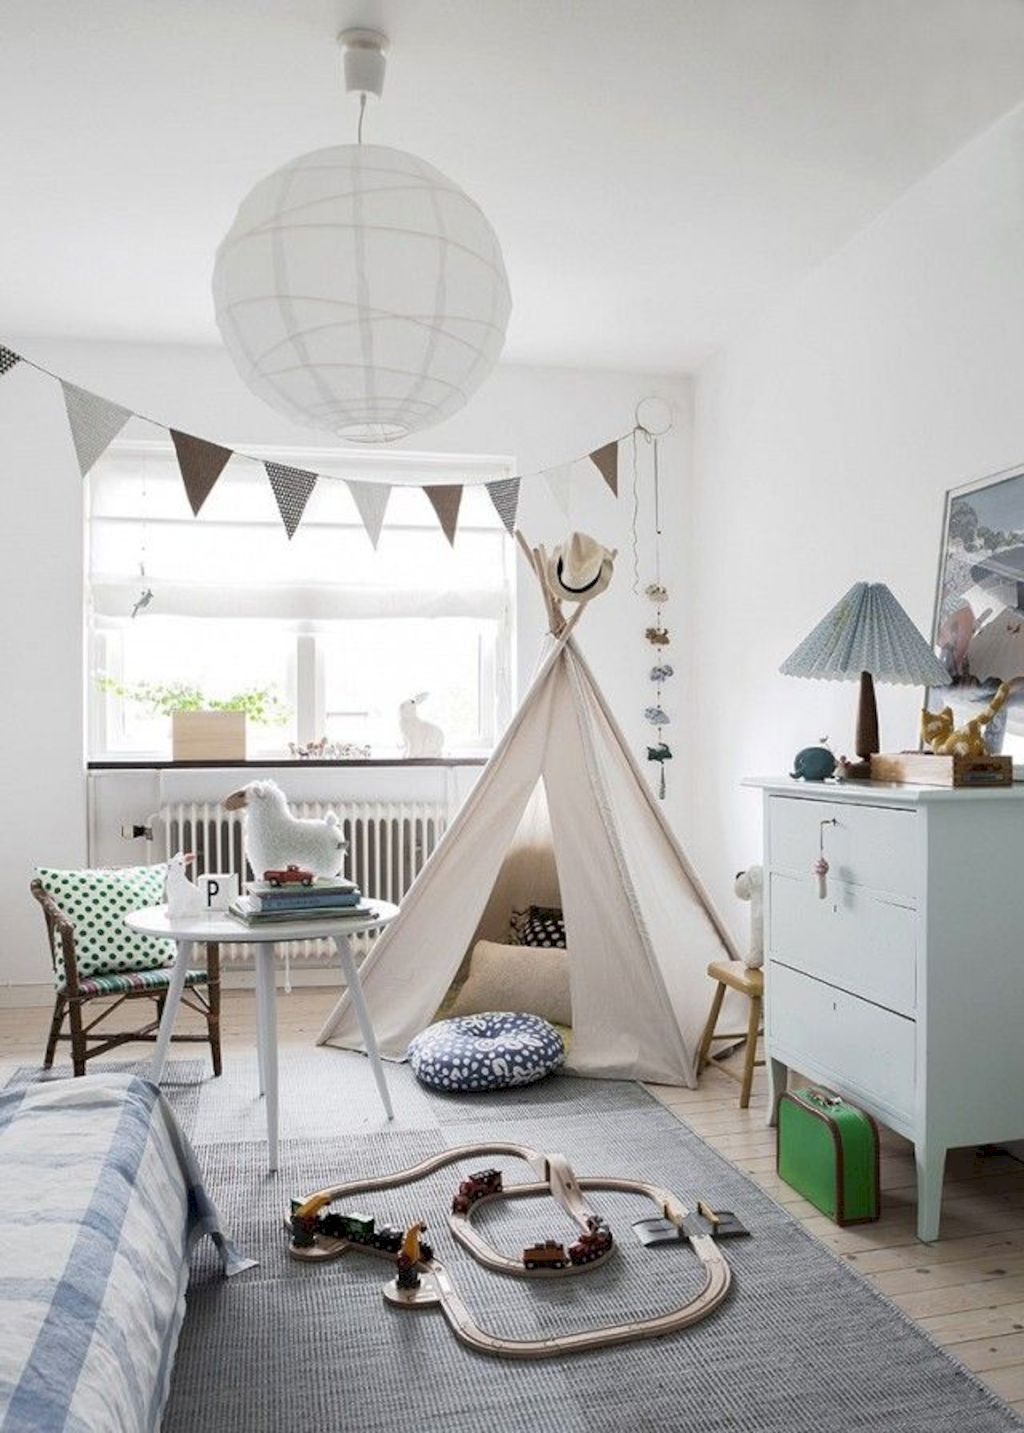 Fun and stylish play spaces for children looking best with modern and simple concepts that fit in any small space Image 1